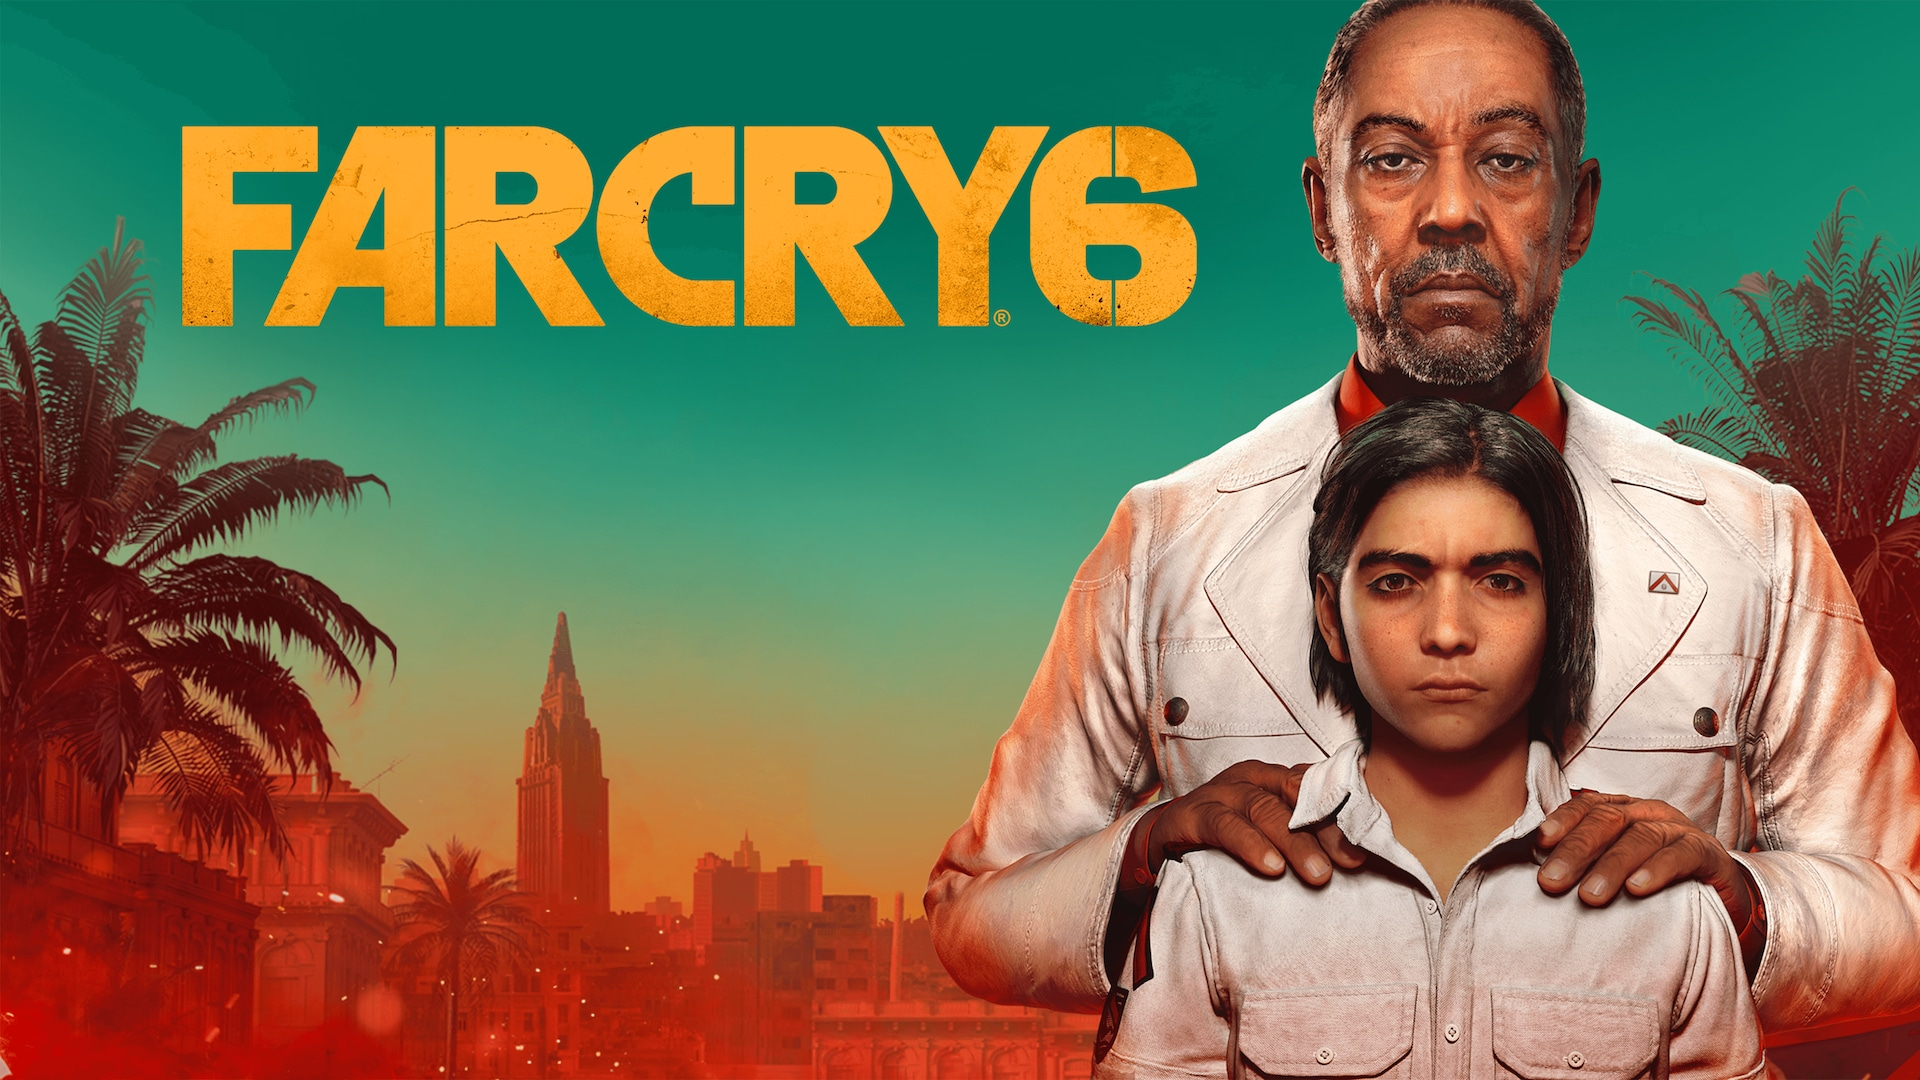 Far Cry 6 story details leaked online